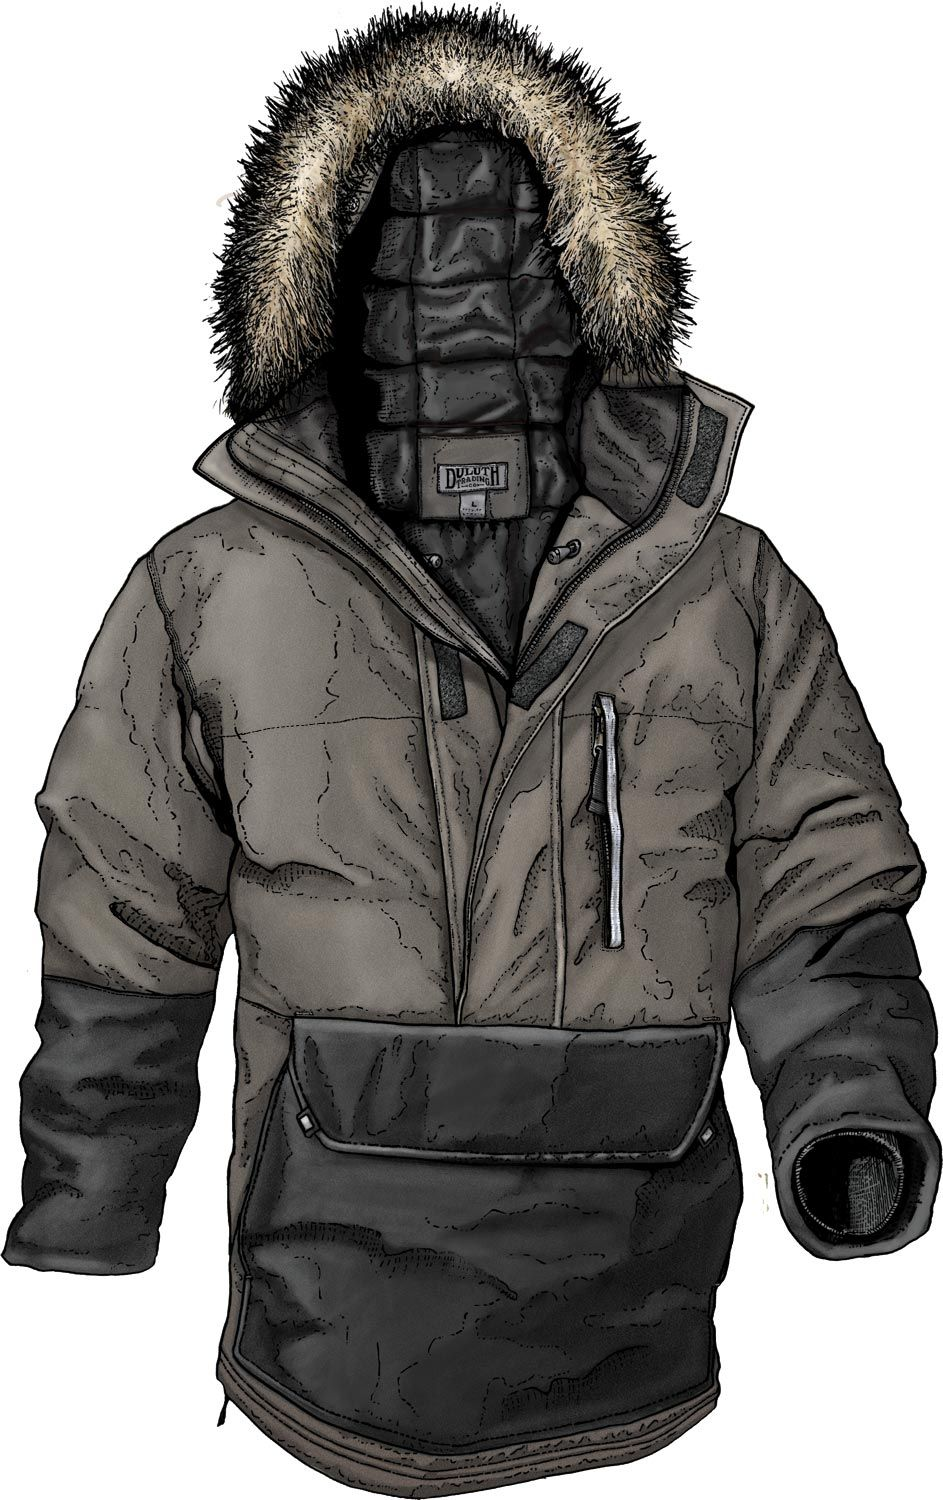 Men's Manorak Anorak Jacket from Duluth Trading Company is packed with 650-fill-power down for warmth to -30˚F. Windproof 4.3-oz nylon resists abrasion better than cotton duck with a water-resistant finish. Plus Armpit Gussets for mobility to outrun